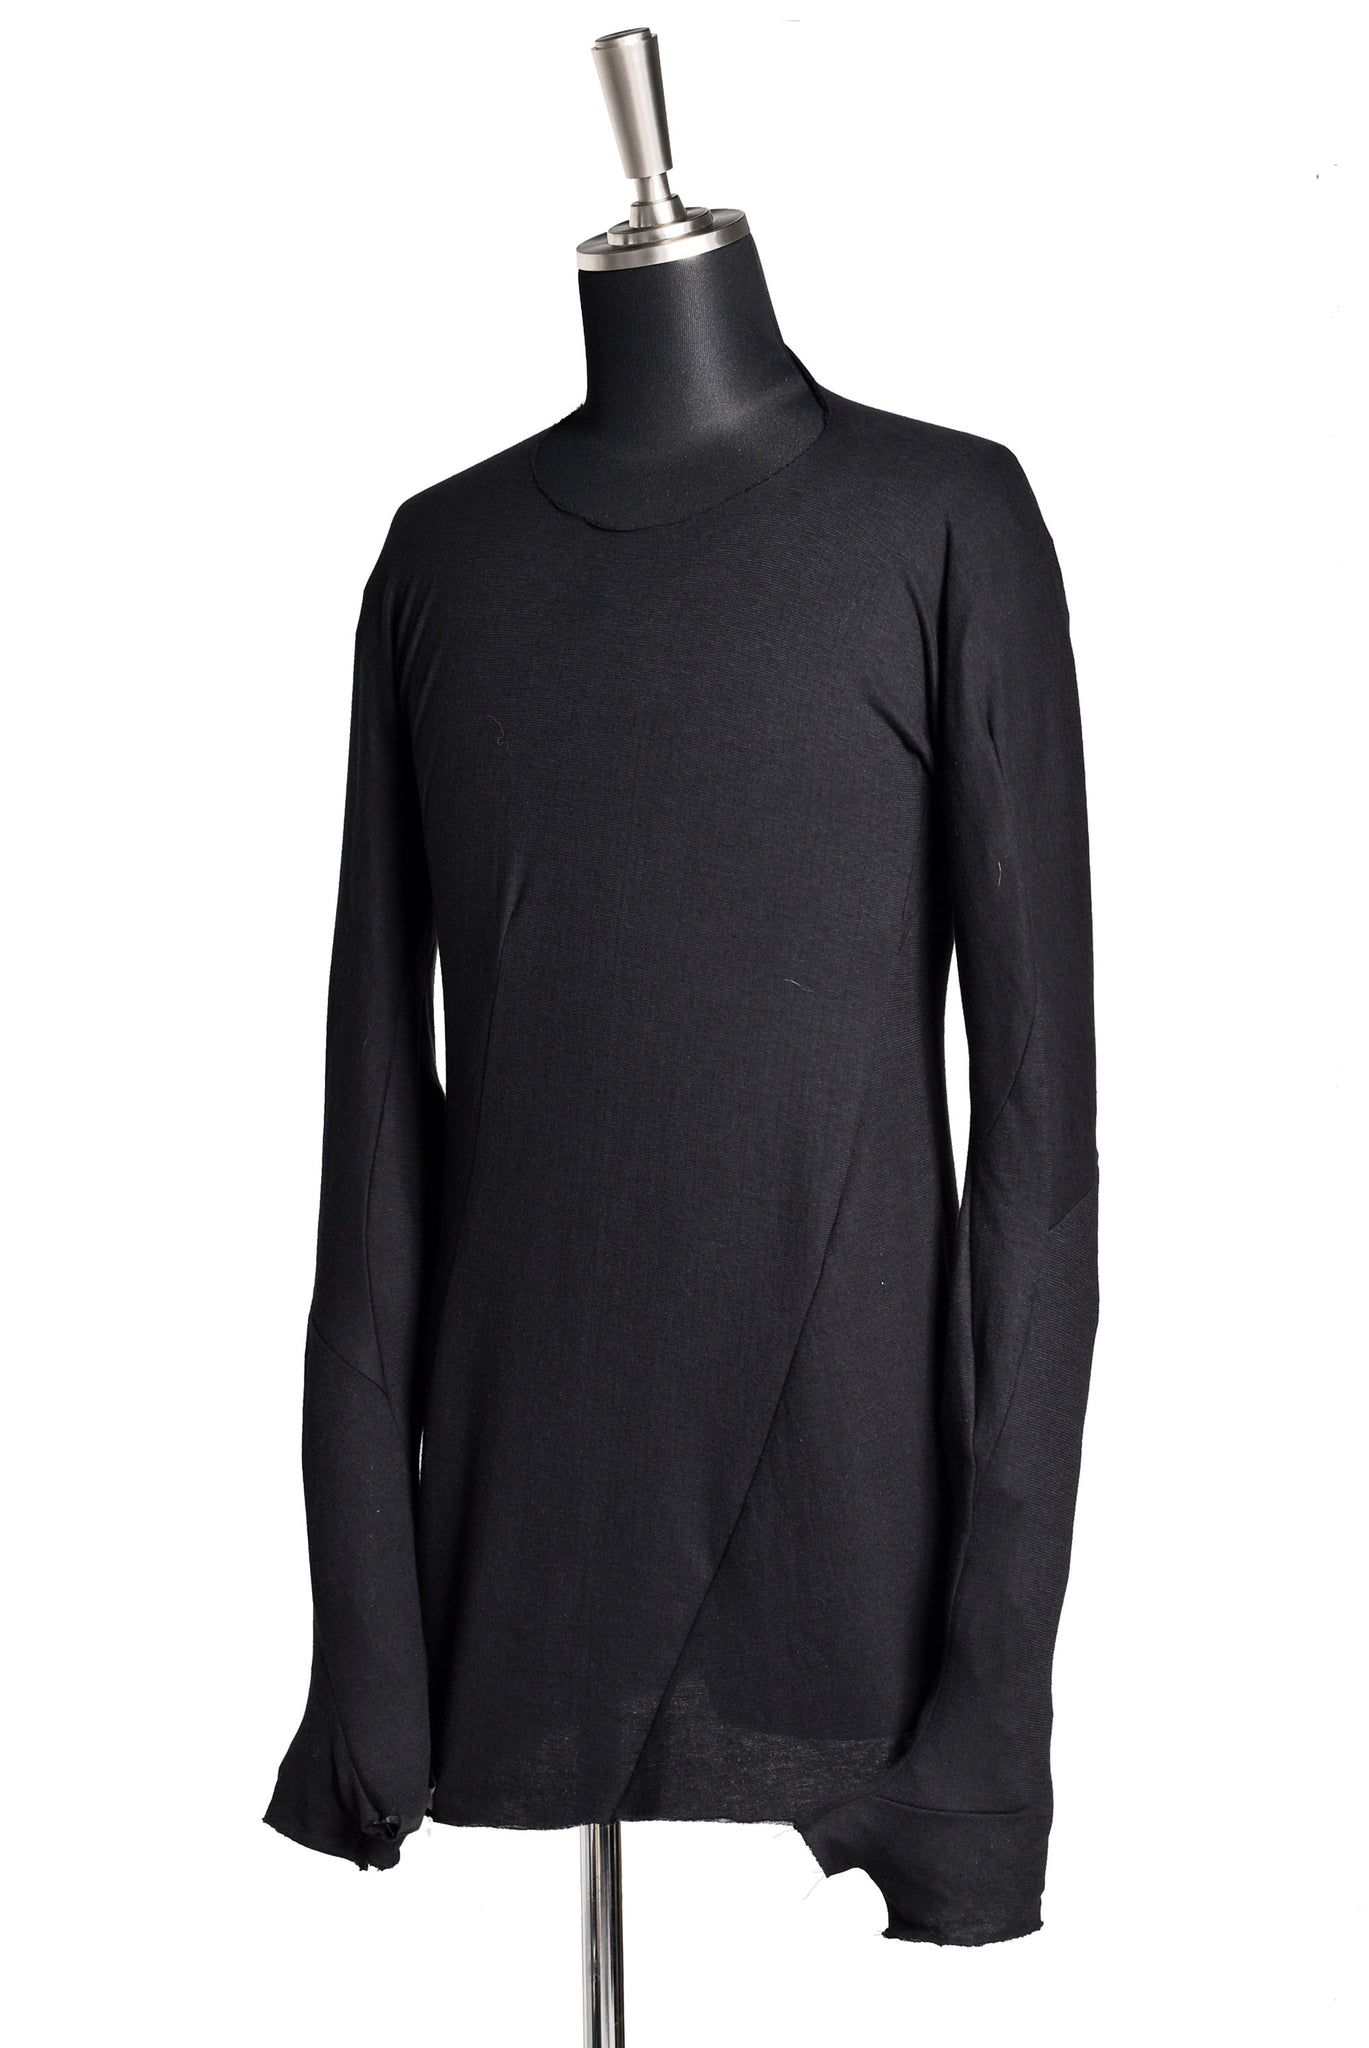 LEON EMANUEL BLANCK DISTORTION GLOVED LS TOPS / DOUBLE JERSEY (BLACK)